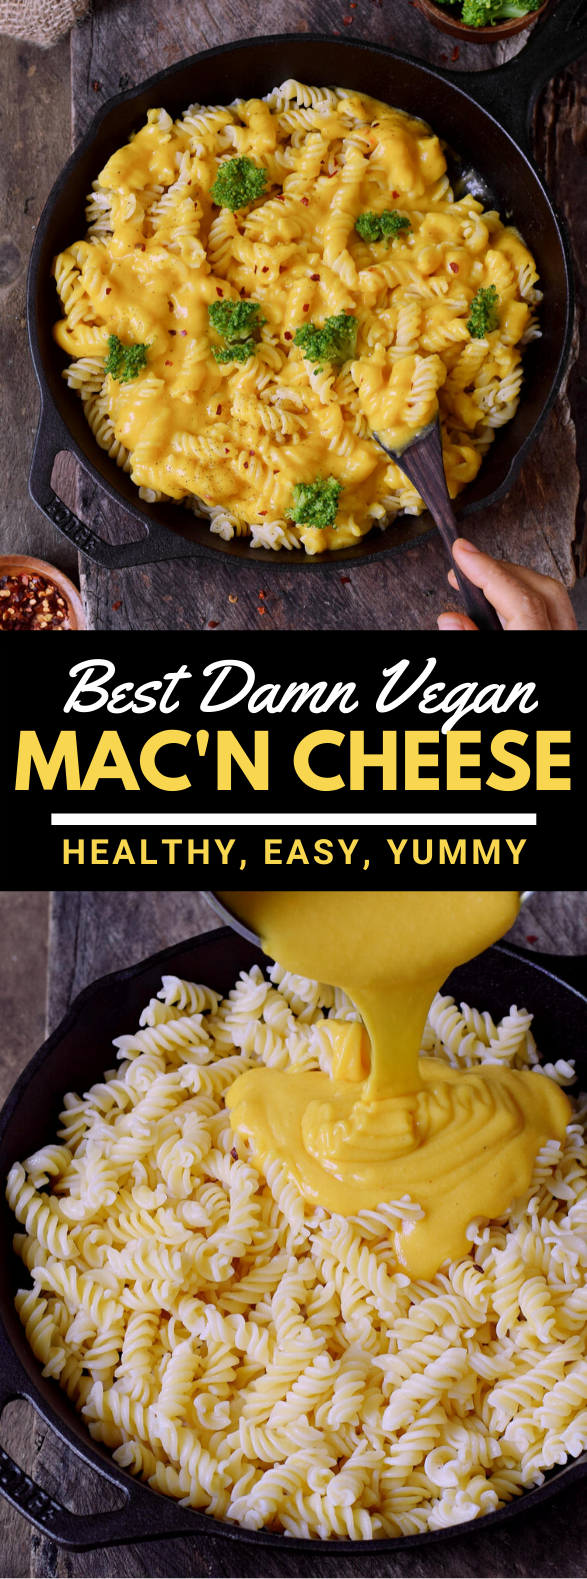 HEALTHY VEGAN MAC AND CHEESE #easyrecipes #glutenfree